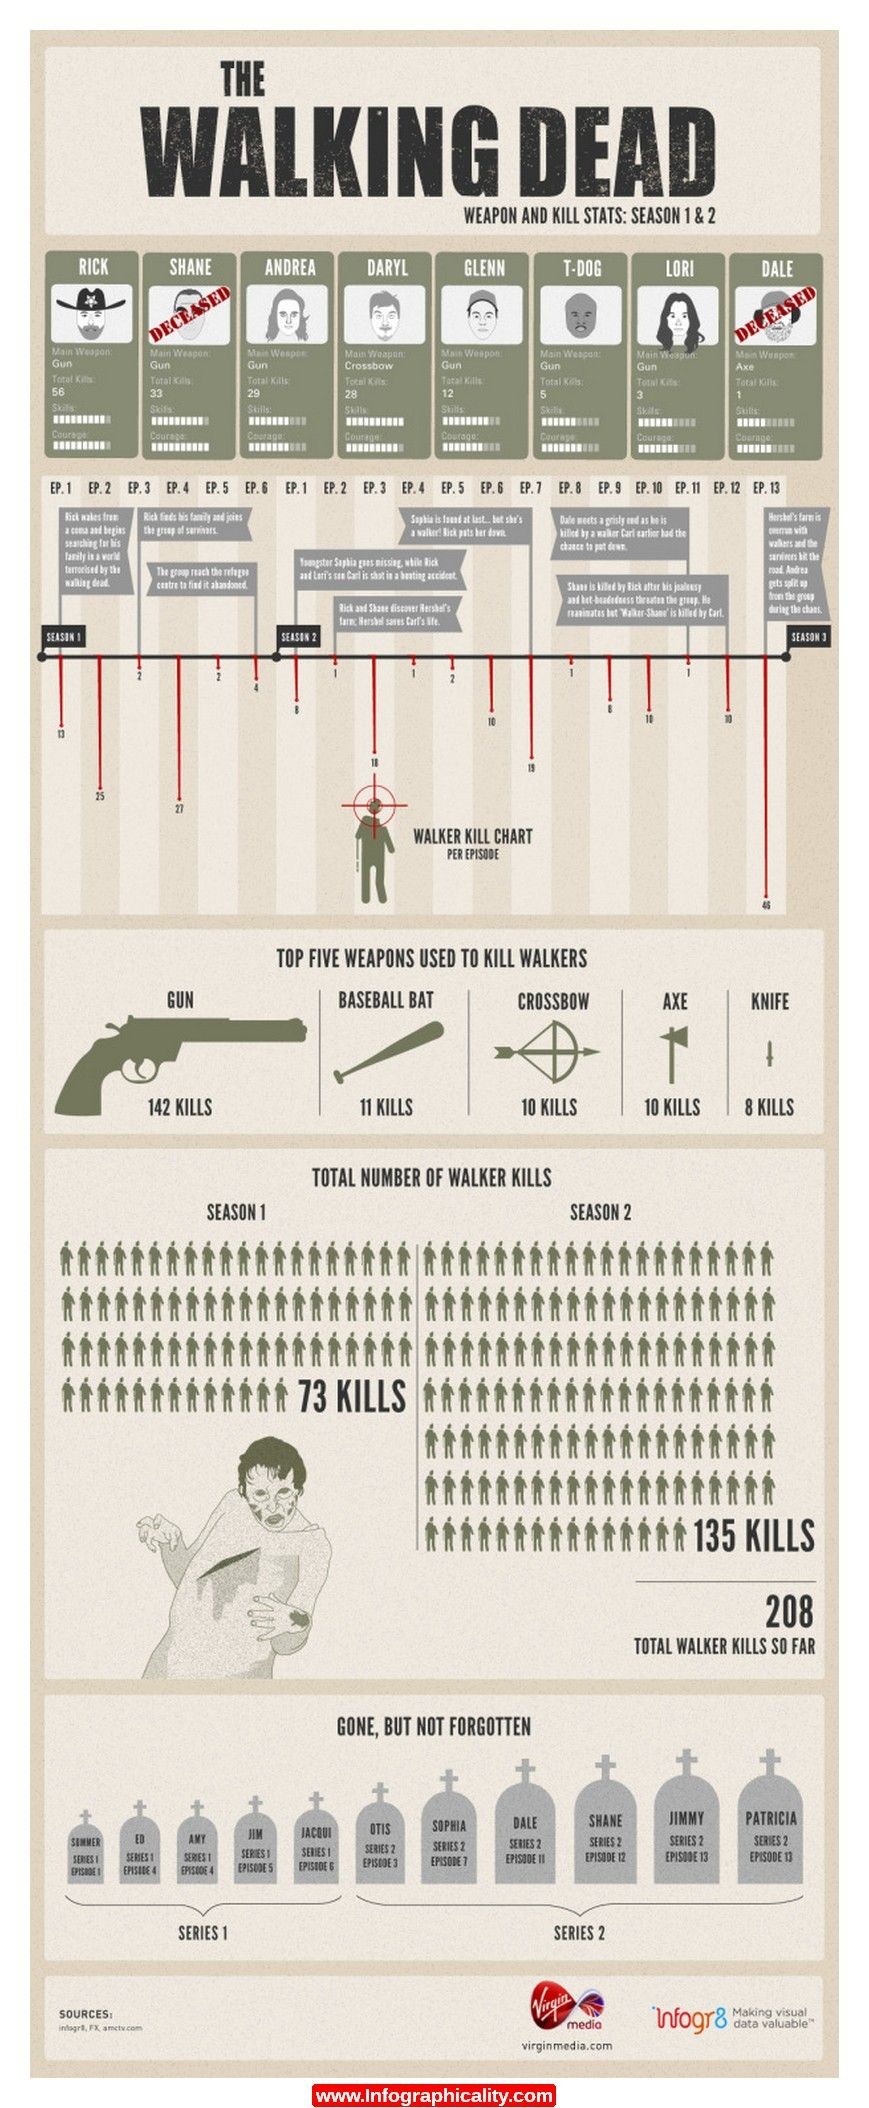 The Walking Dead 5081265d32a76 Infographic - http://infographicality.com/the-walking-dead-5081265d32a76-infographic/